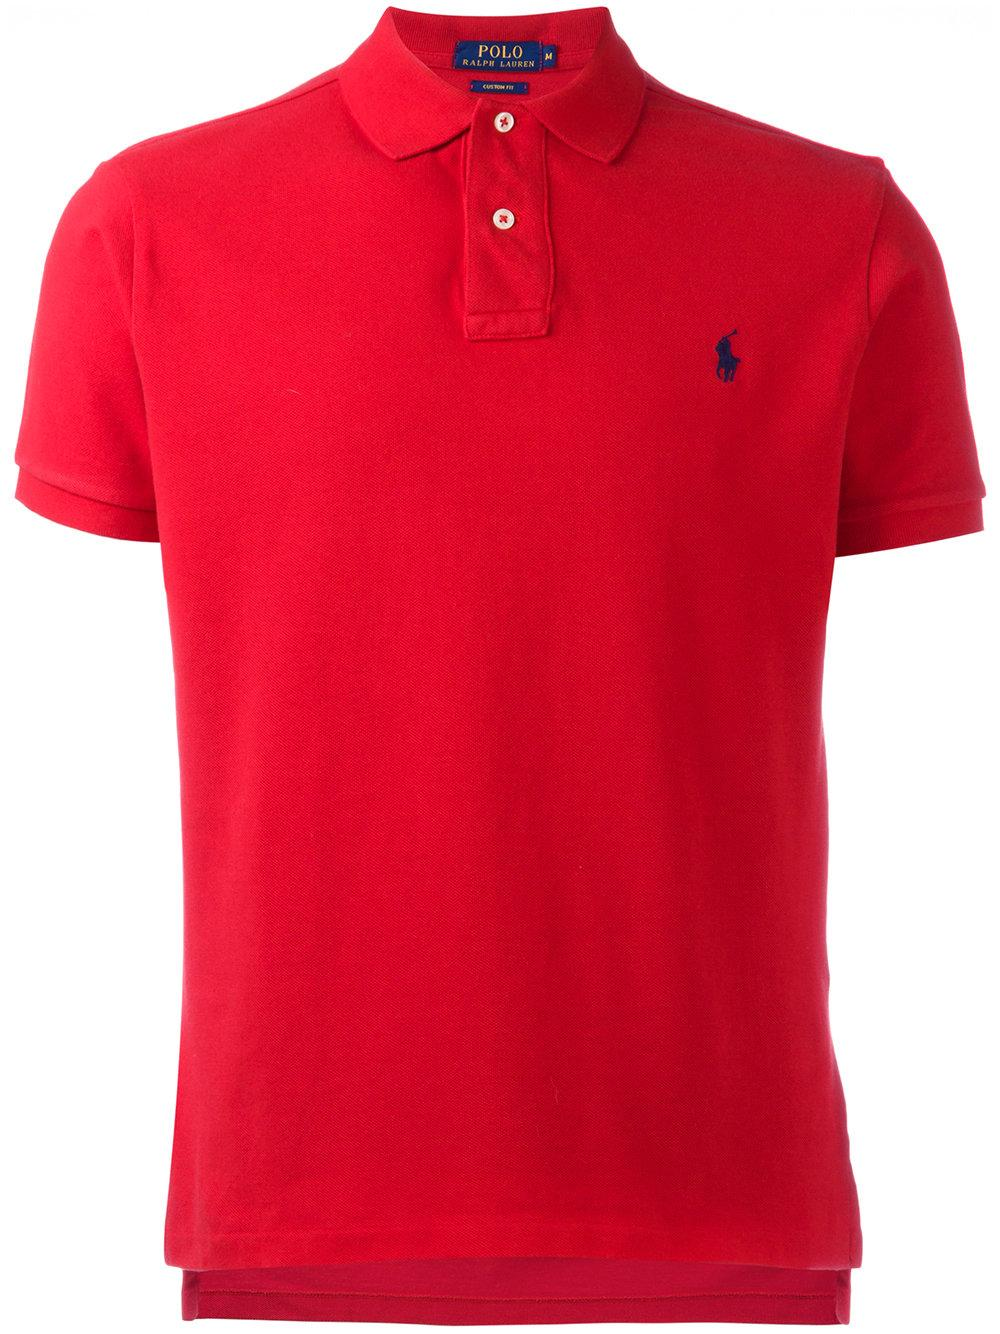 Polo Ralph Lauren Logo Embroidery Polo Shirt In Red For